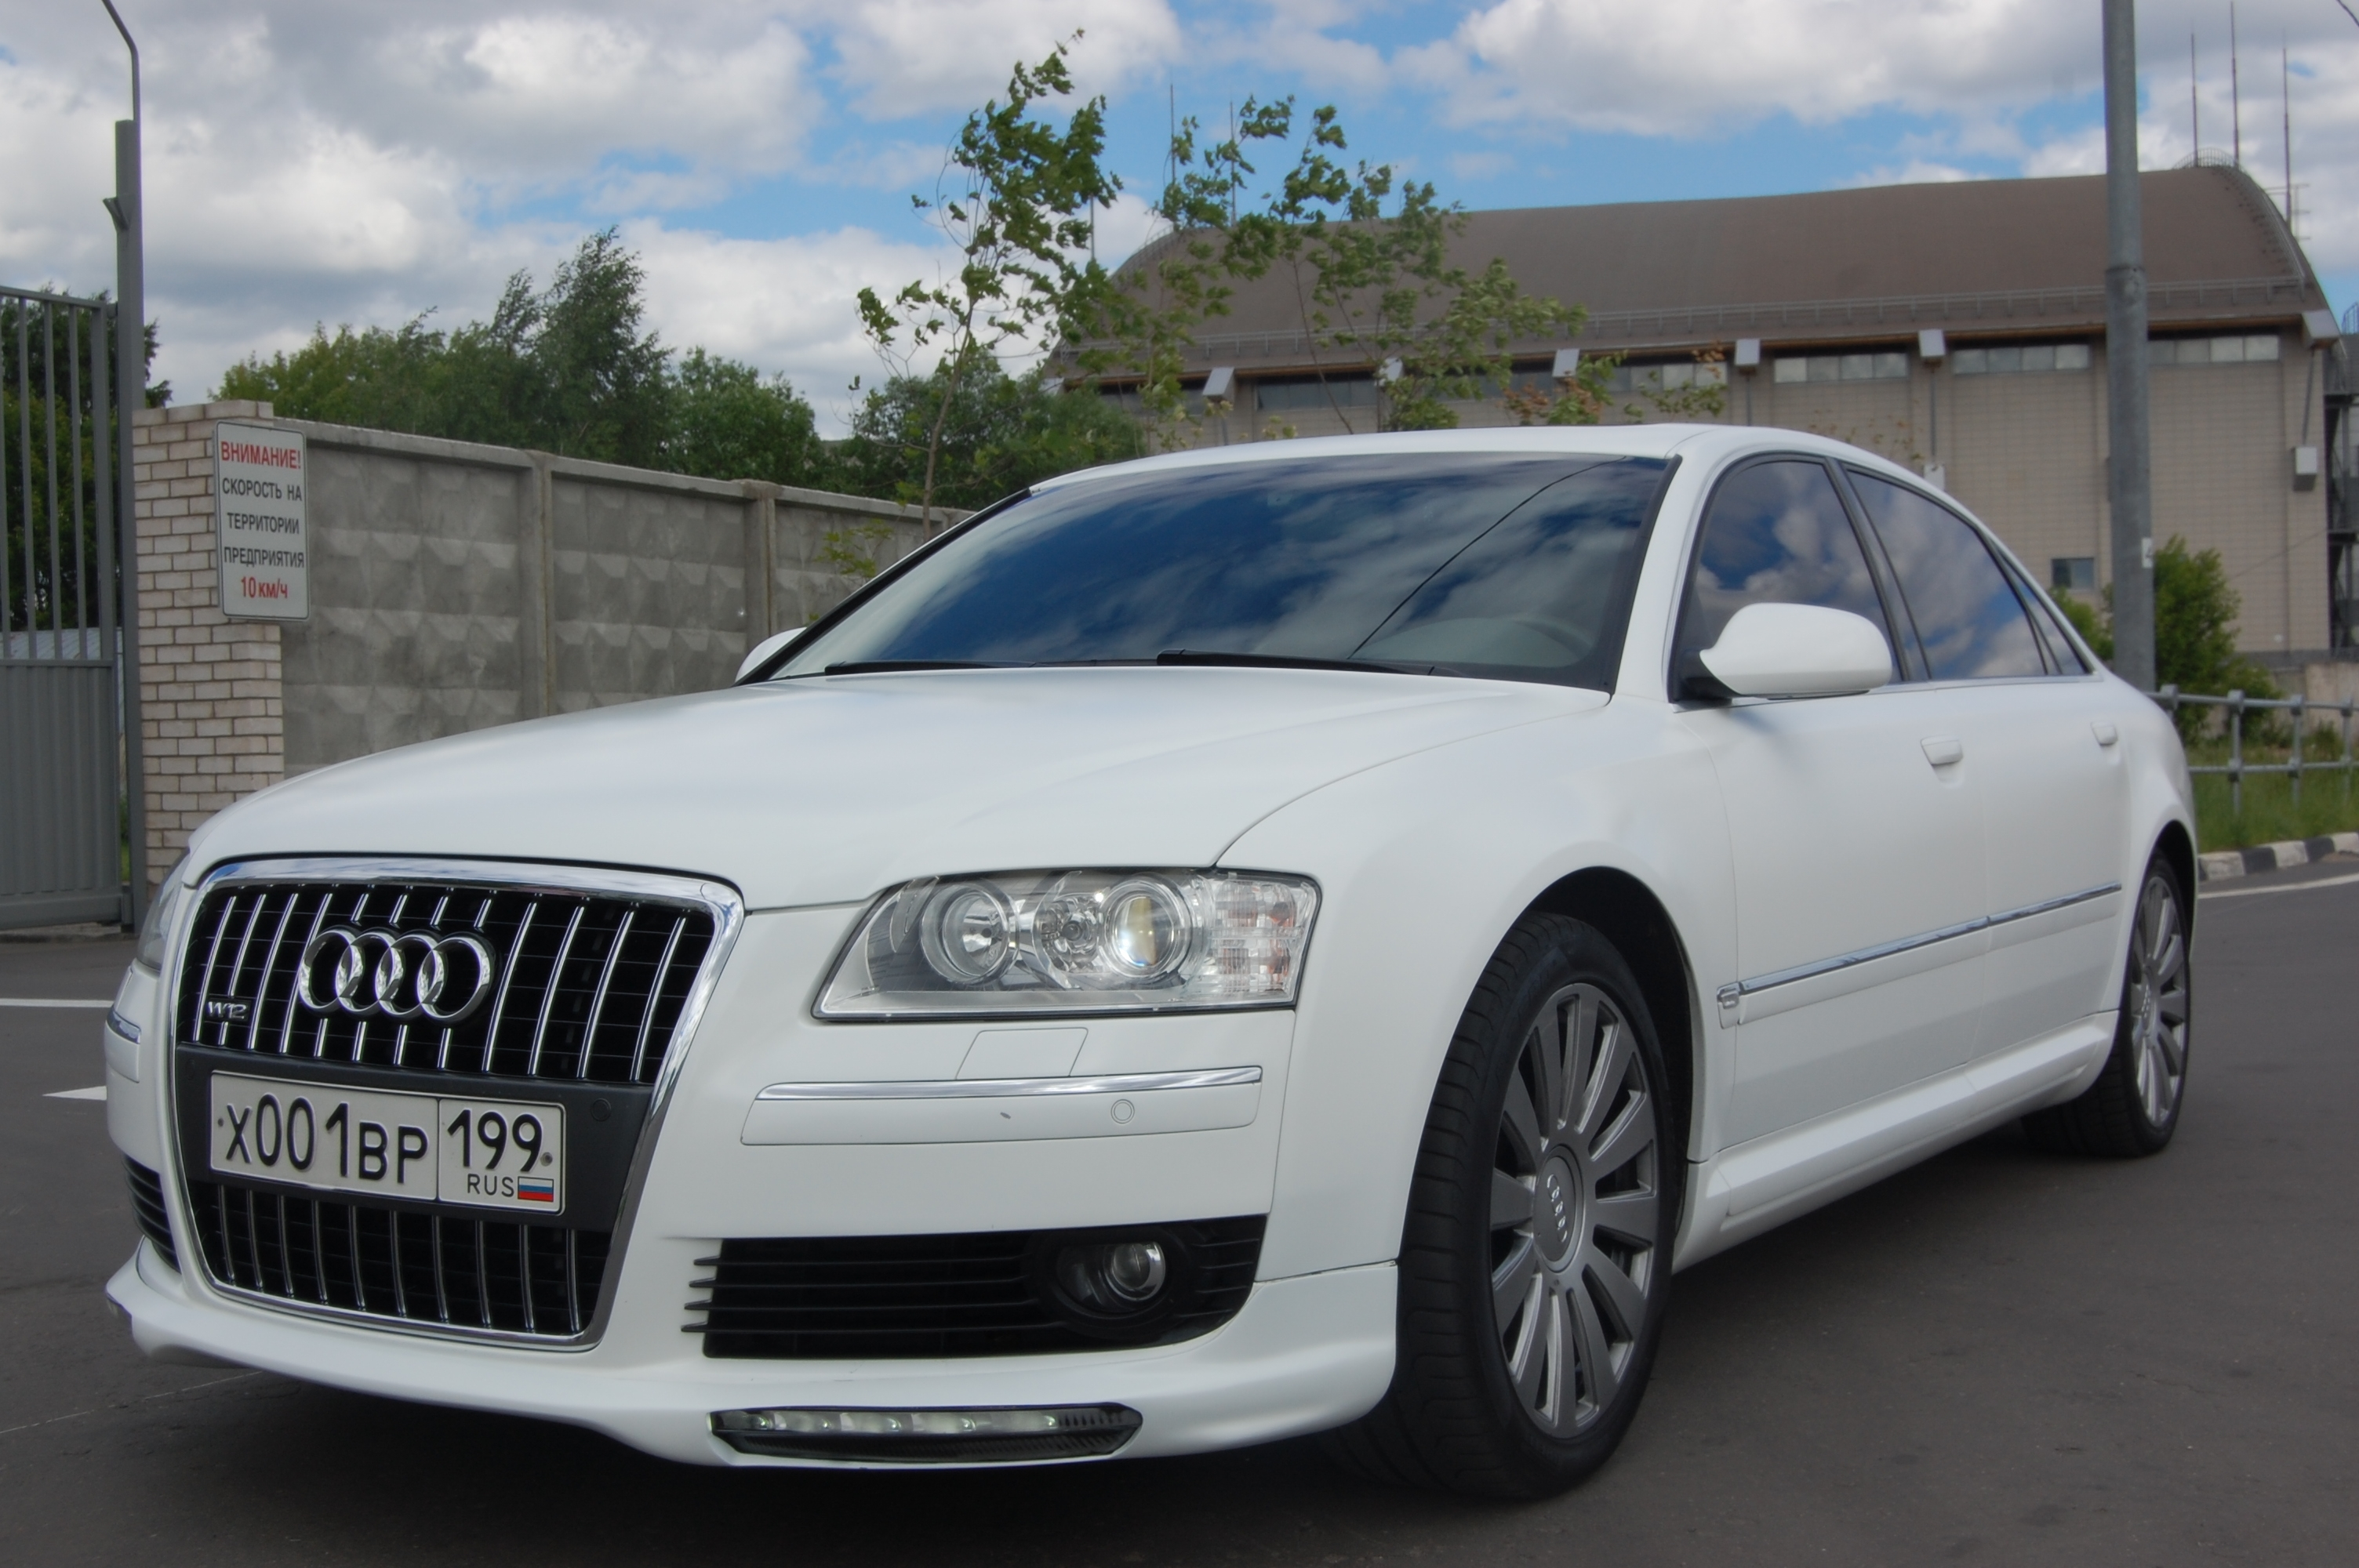 quattro infomation classifieds tucson sale in info for audi specifications arizona related tdi tiptronic weili